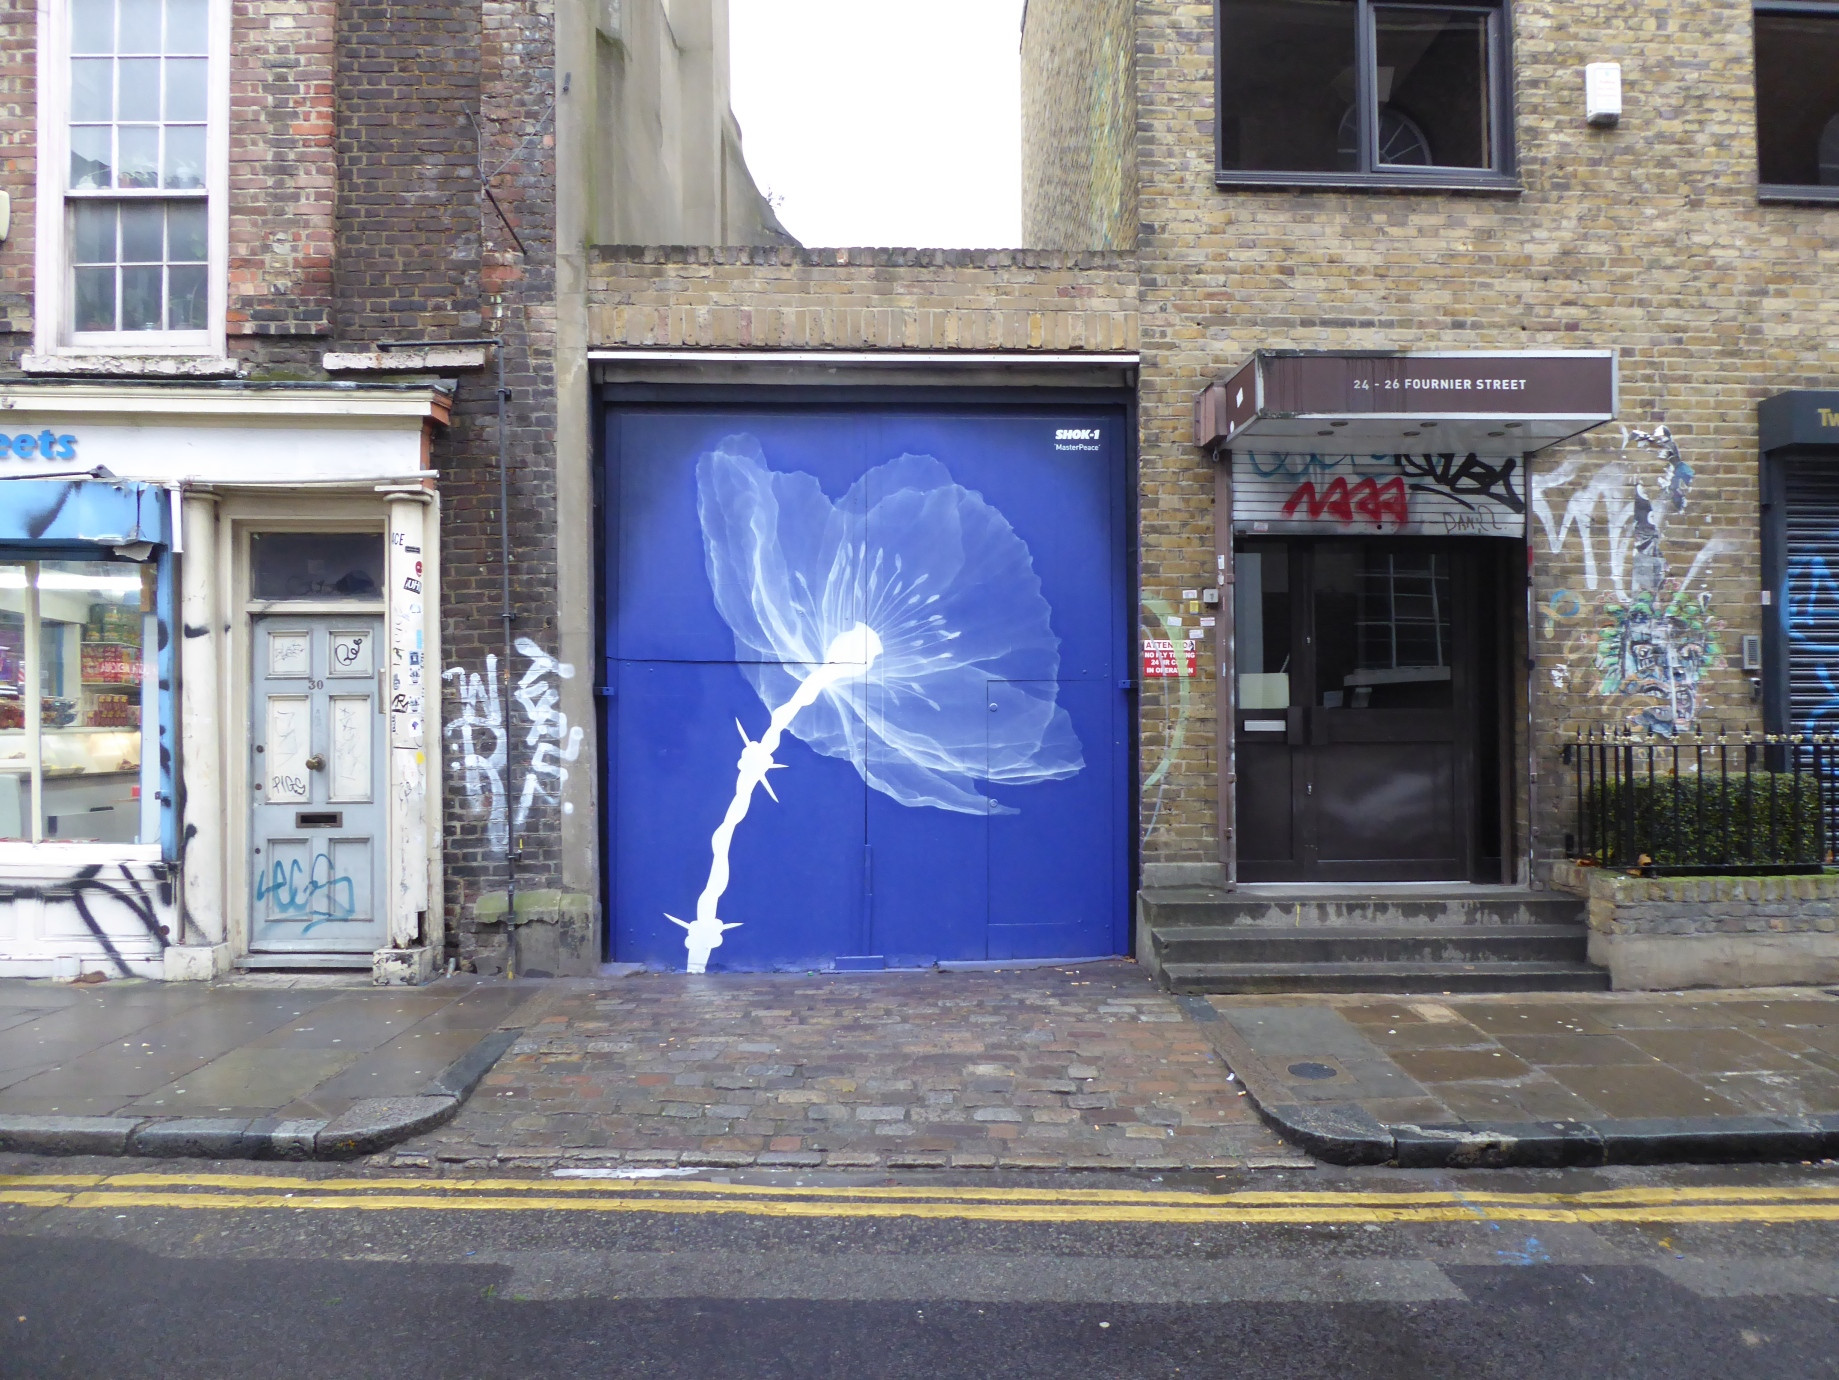 New shok 1 street art masterpeace in brick lane